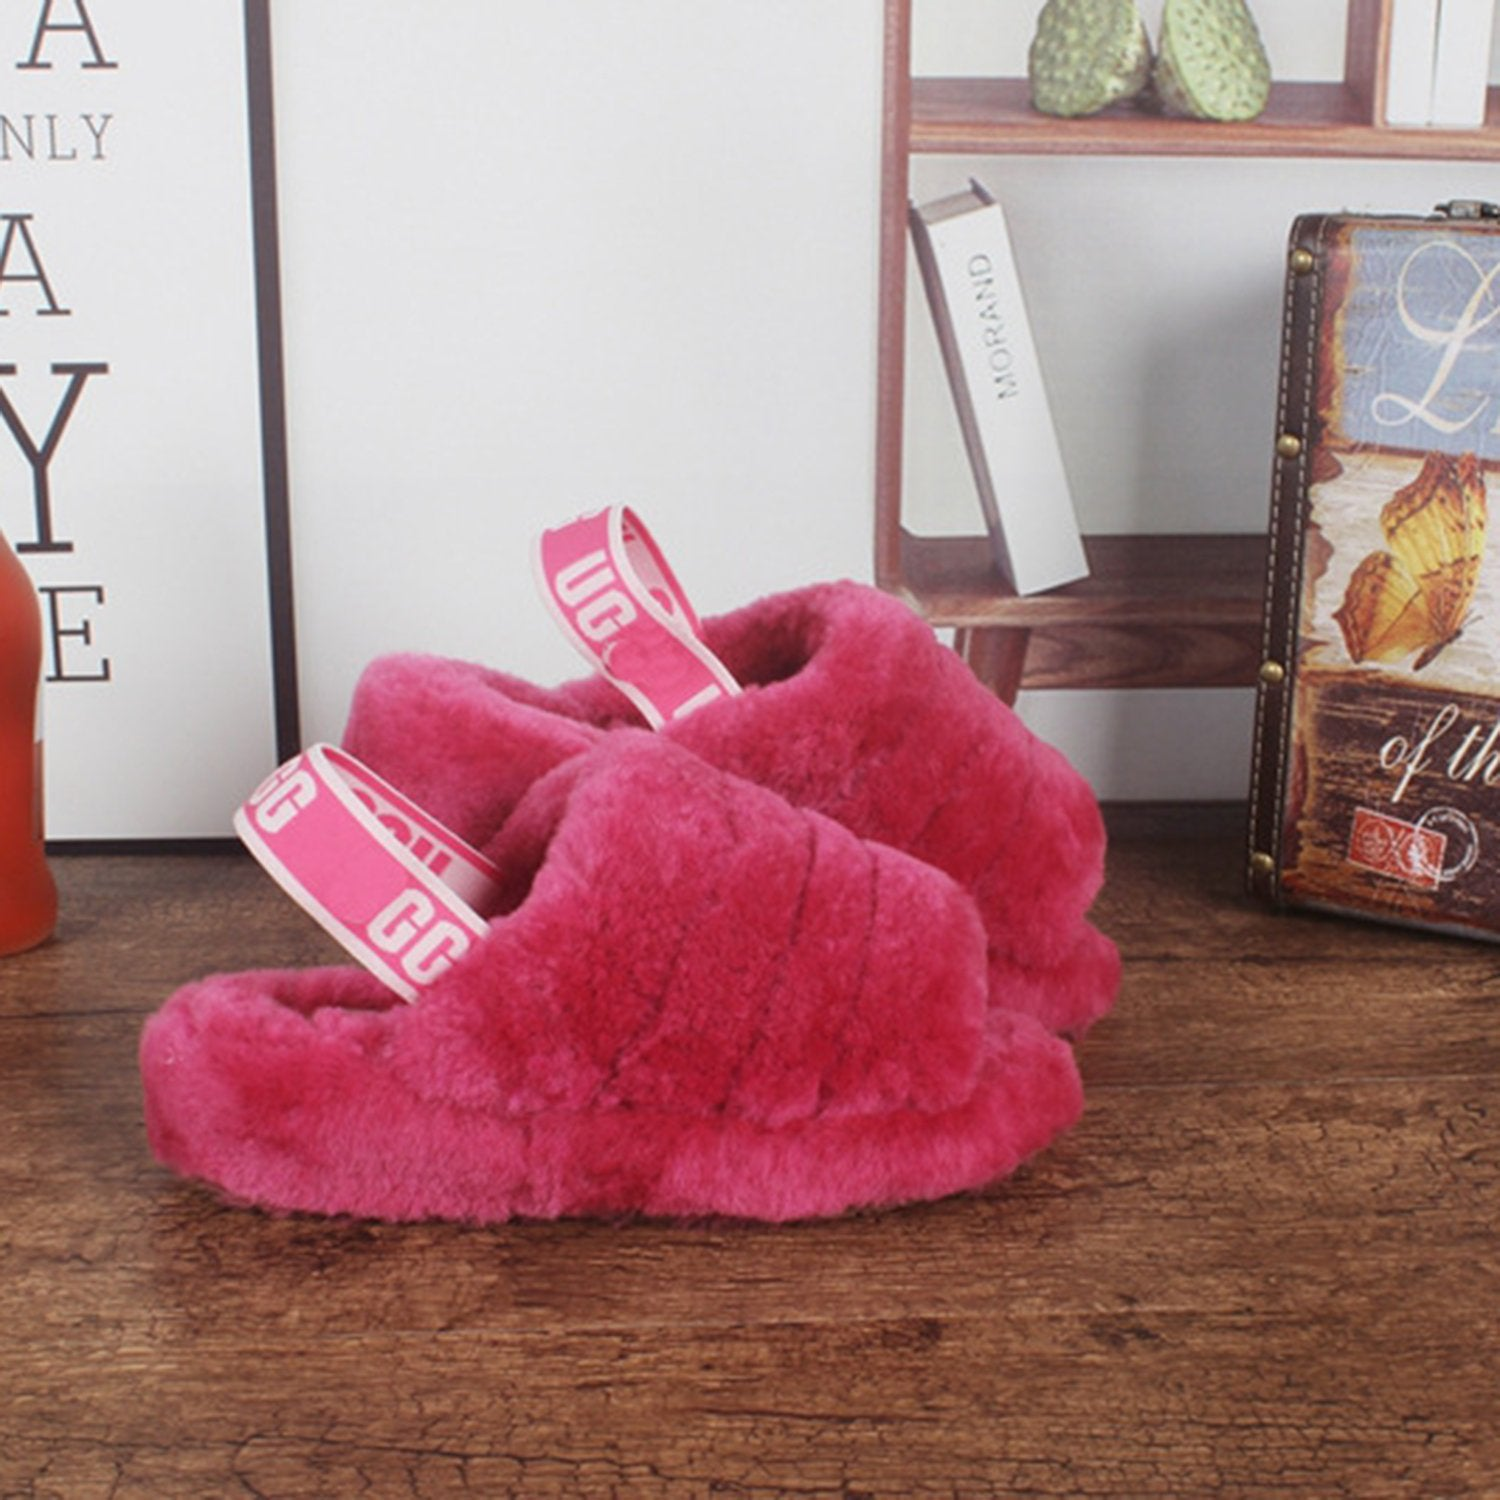 Coconut Warm Furry Slippers Snow Boots